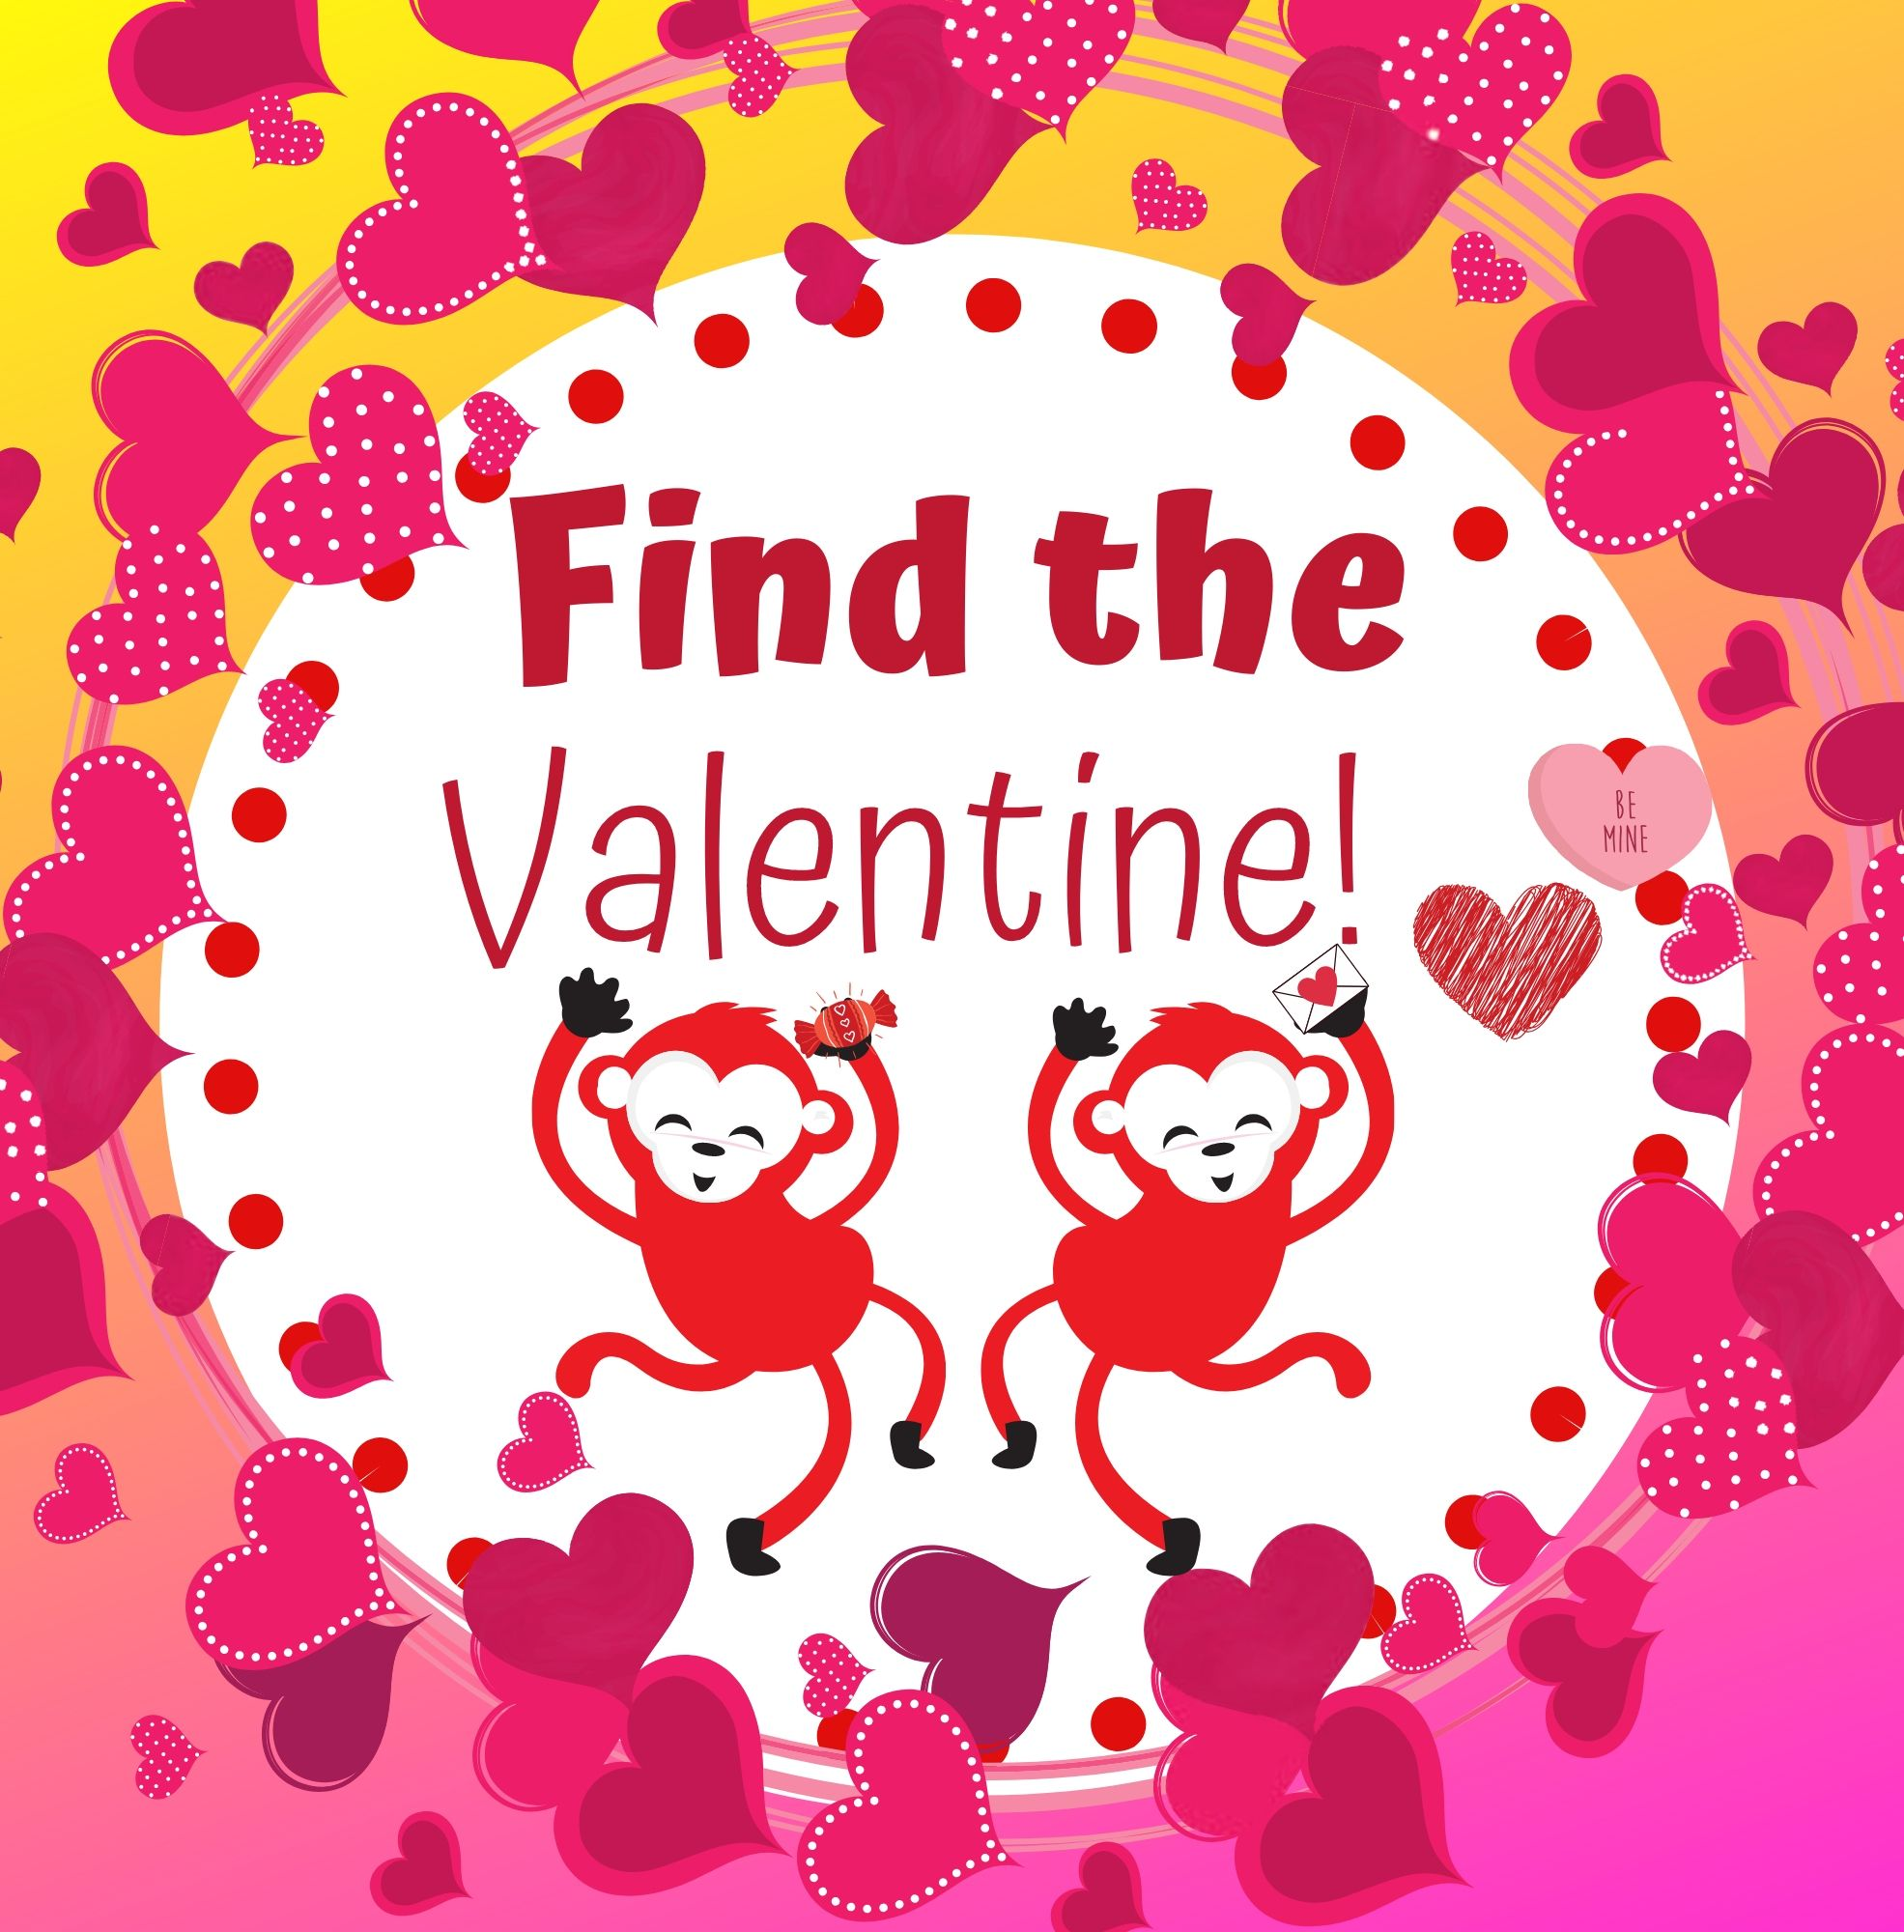 Find the valentine, silly ebook for preschool learners